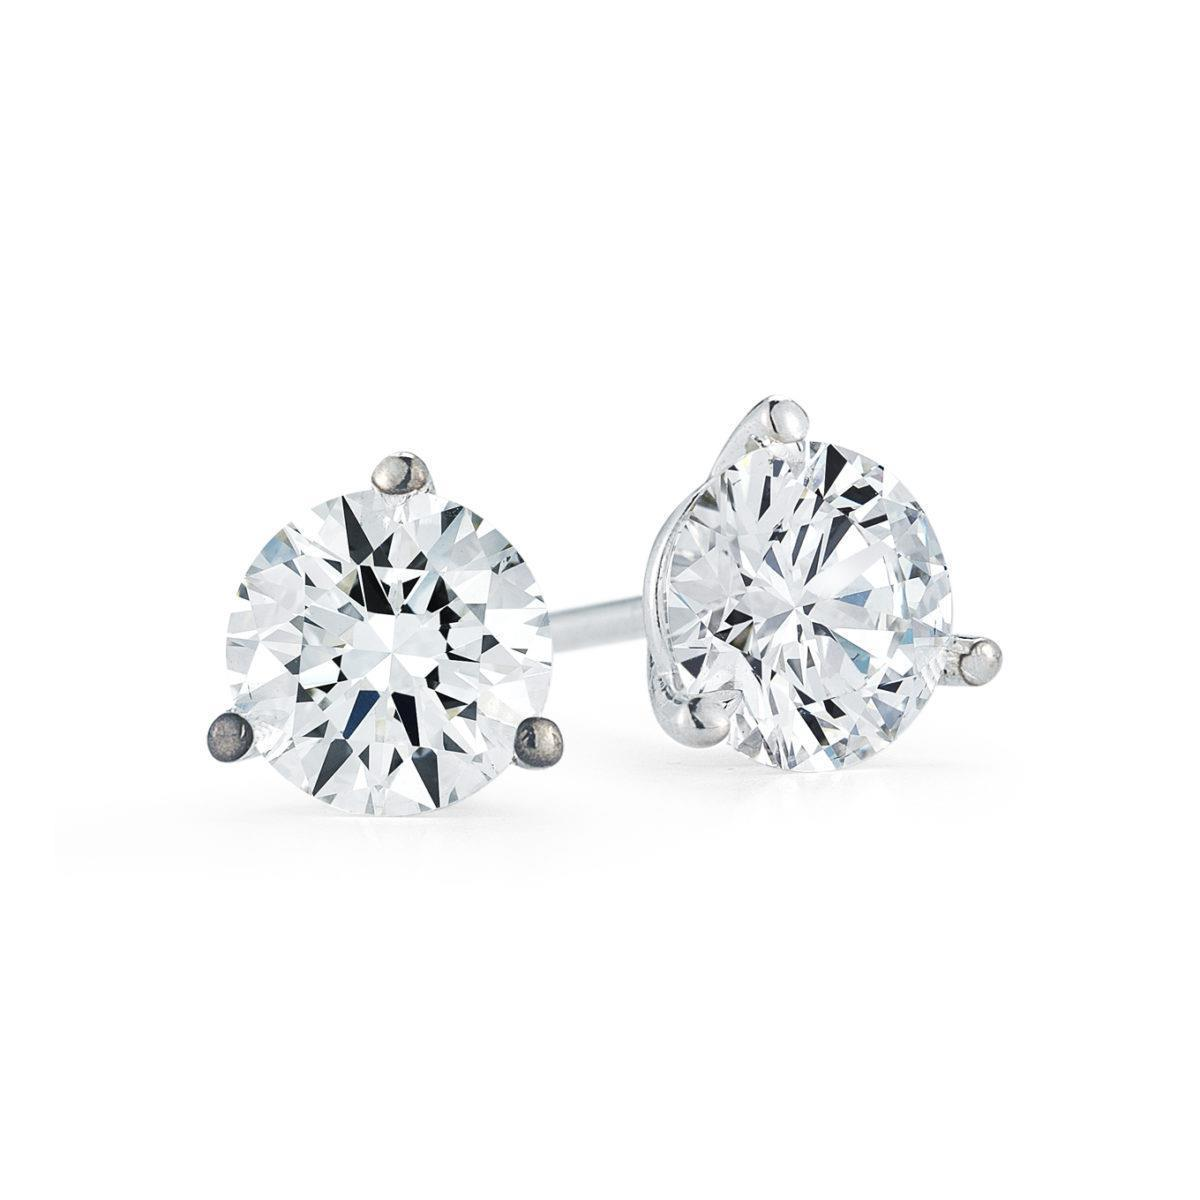 Round Cut Solitaire Diamond Stud Earring White Gold 14K 1.10 Carats Stud Earrings